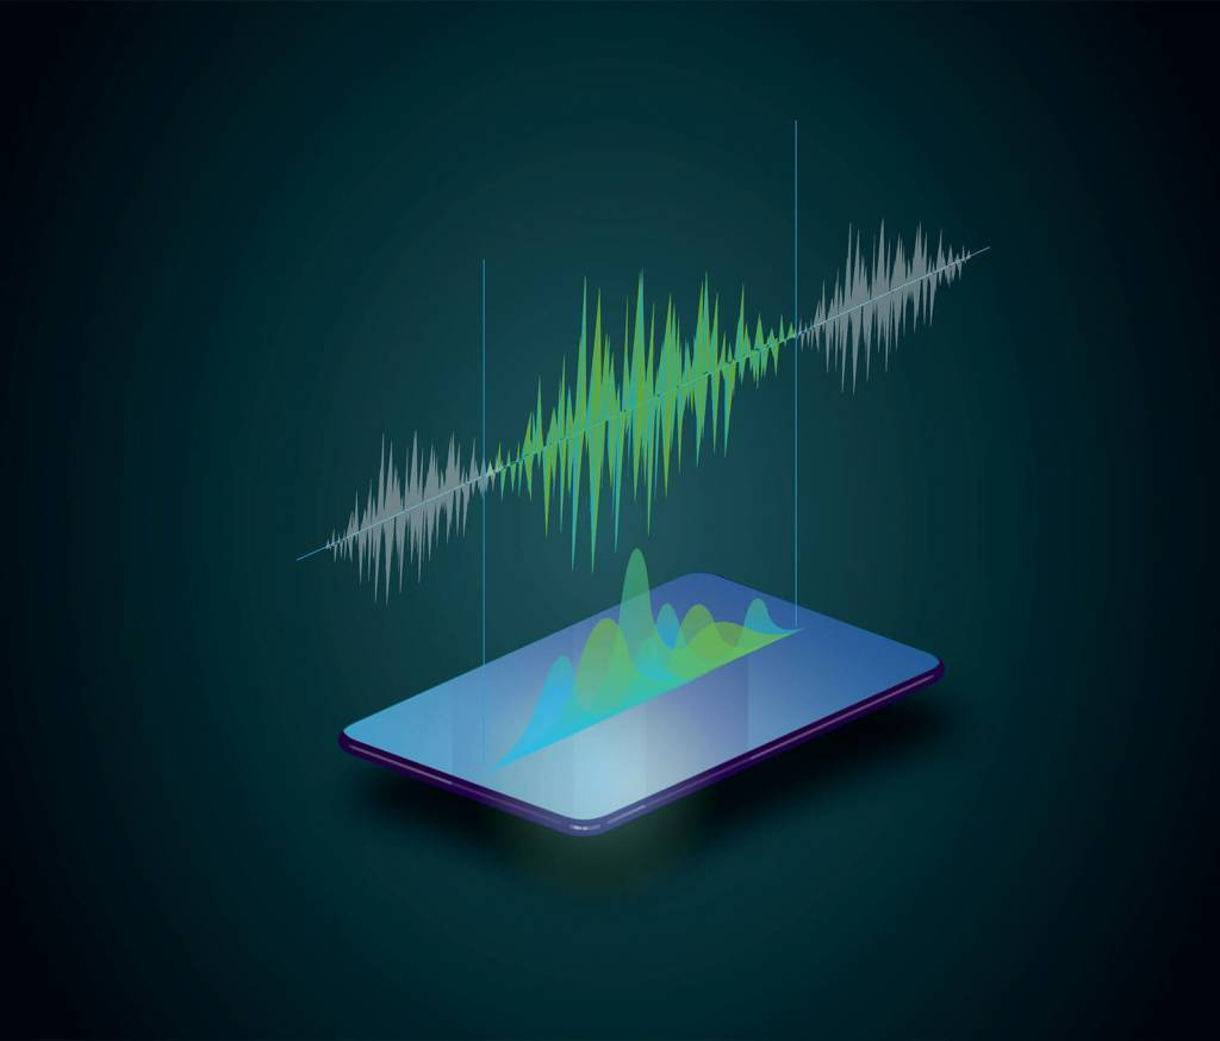 An illustration of a cell phone with a sound wave over it.